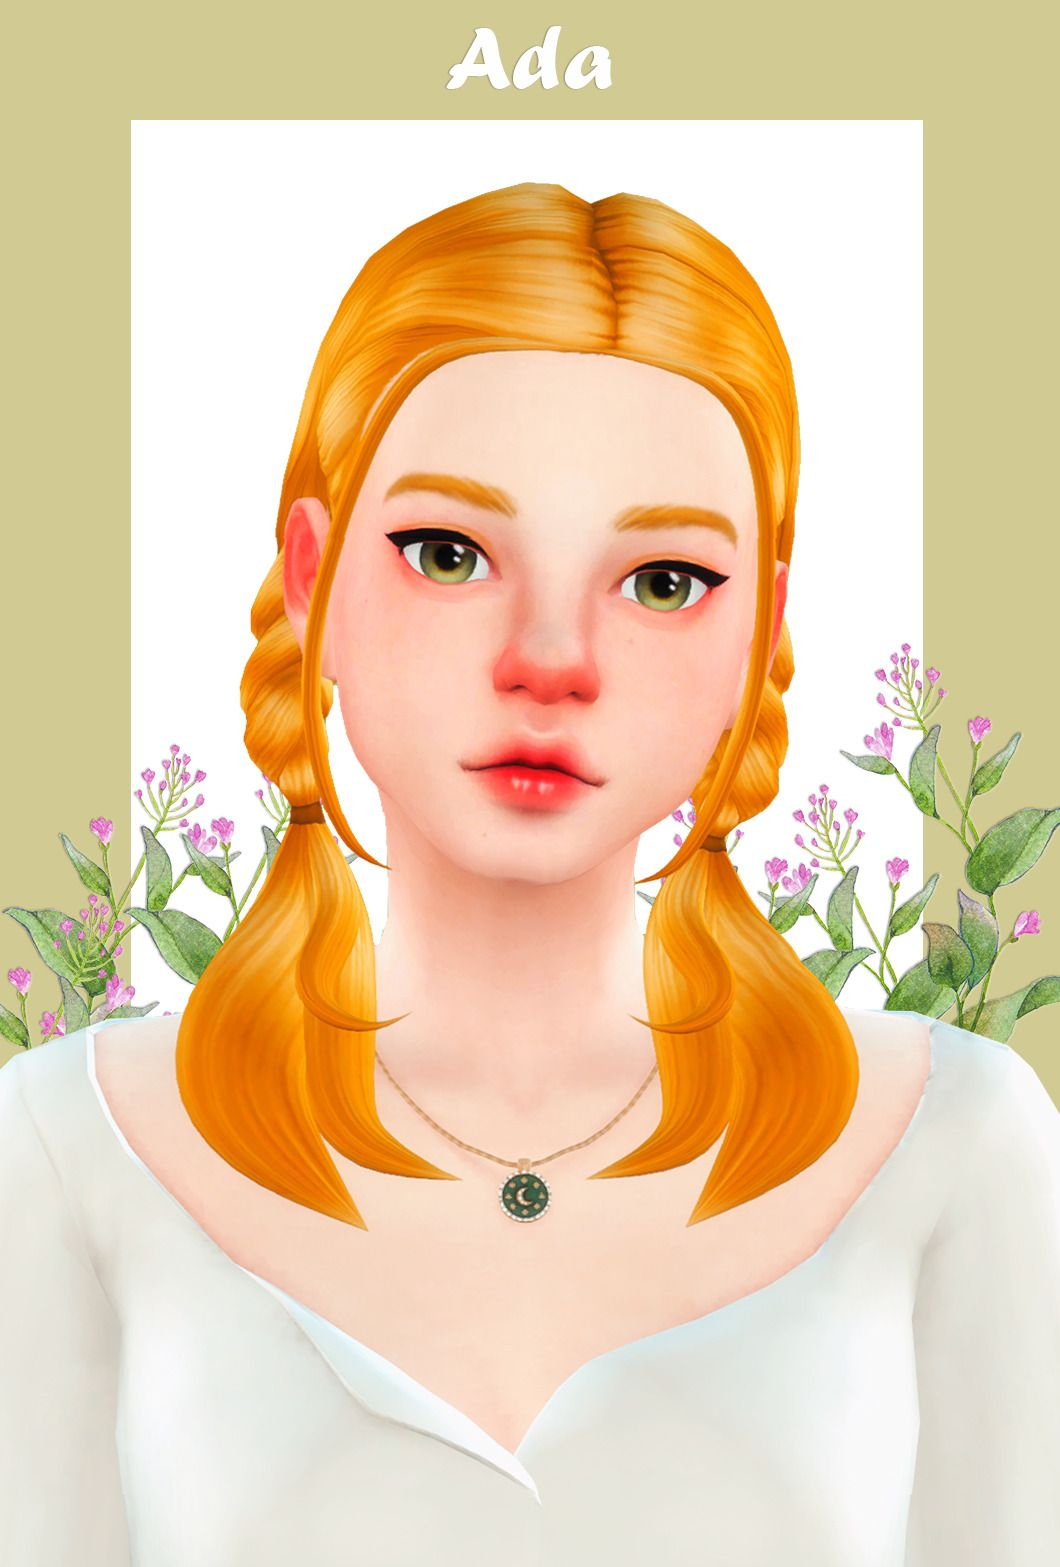 Sims 4 Cc Finds Find and follow posts tagged lana cc finds on tumblr. best wallpaper for mobile